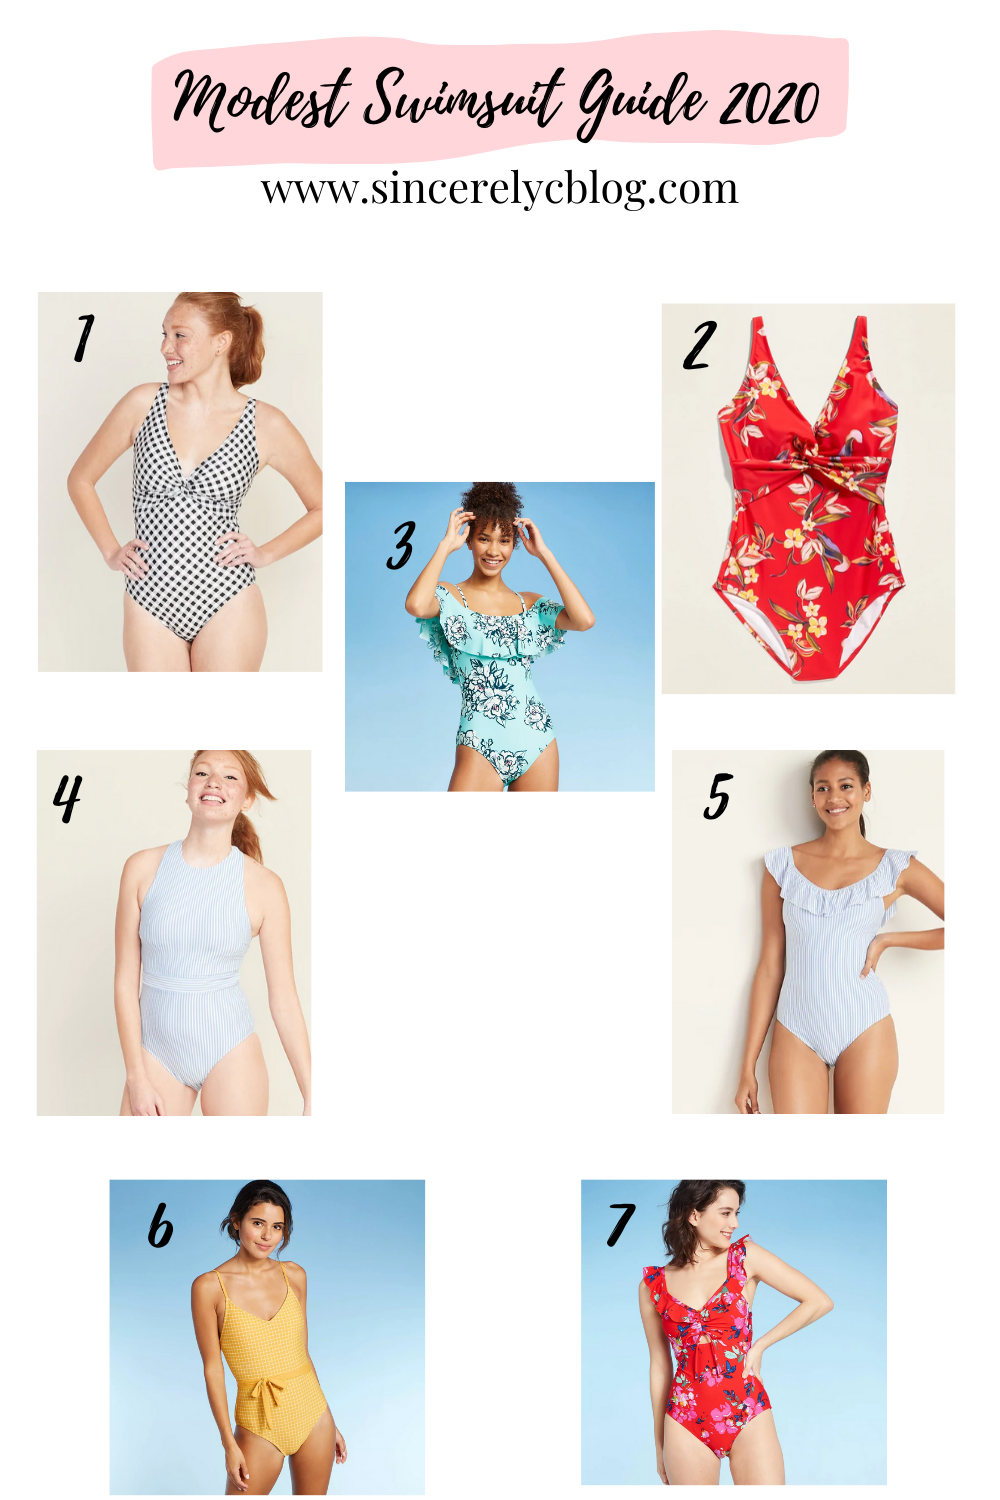 Modest Swimsuit Guide 2020